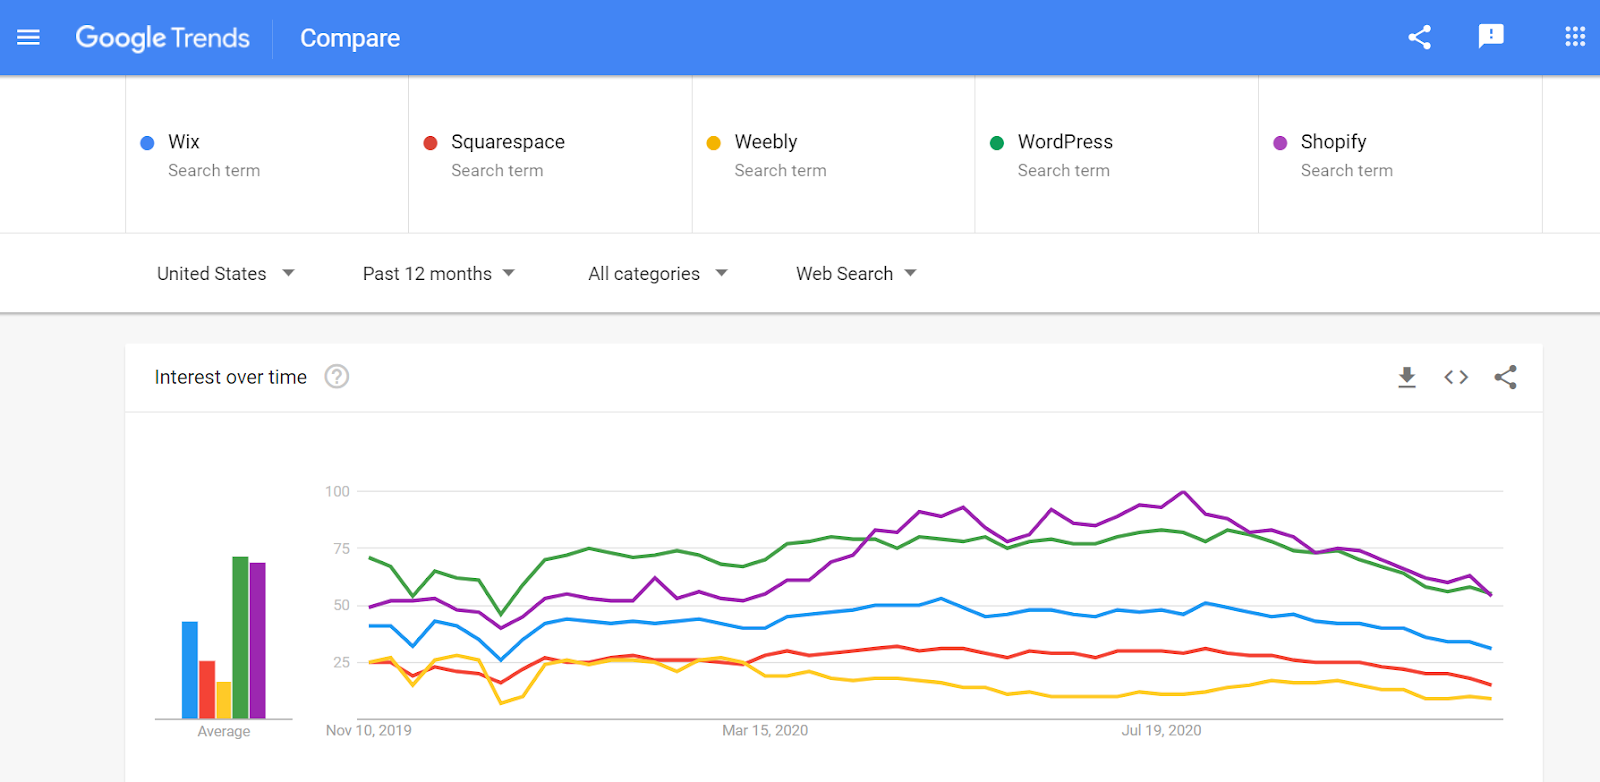 Google Trends Among Wix Squarespace Weebly WordPress Shopify